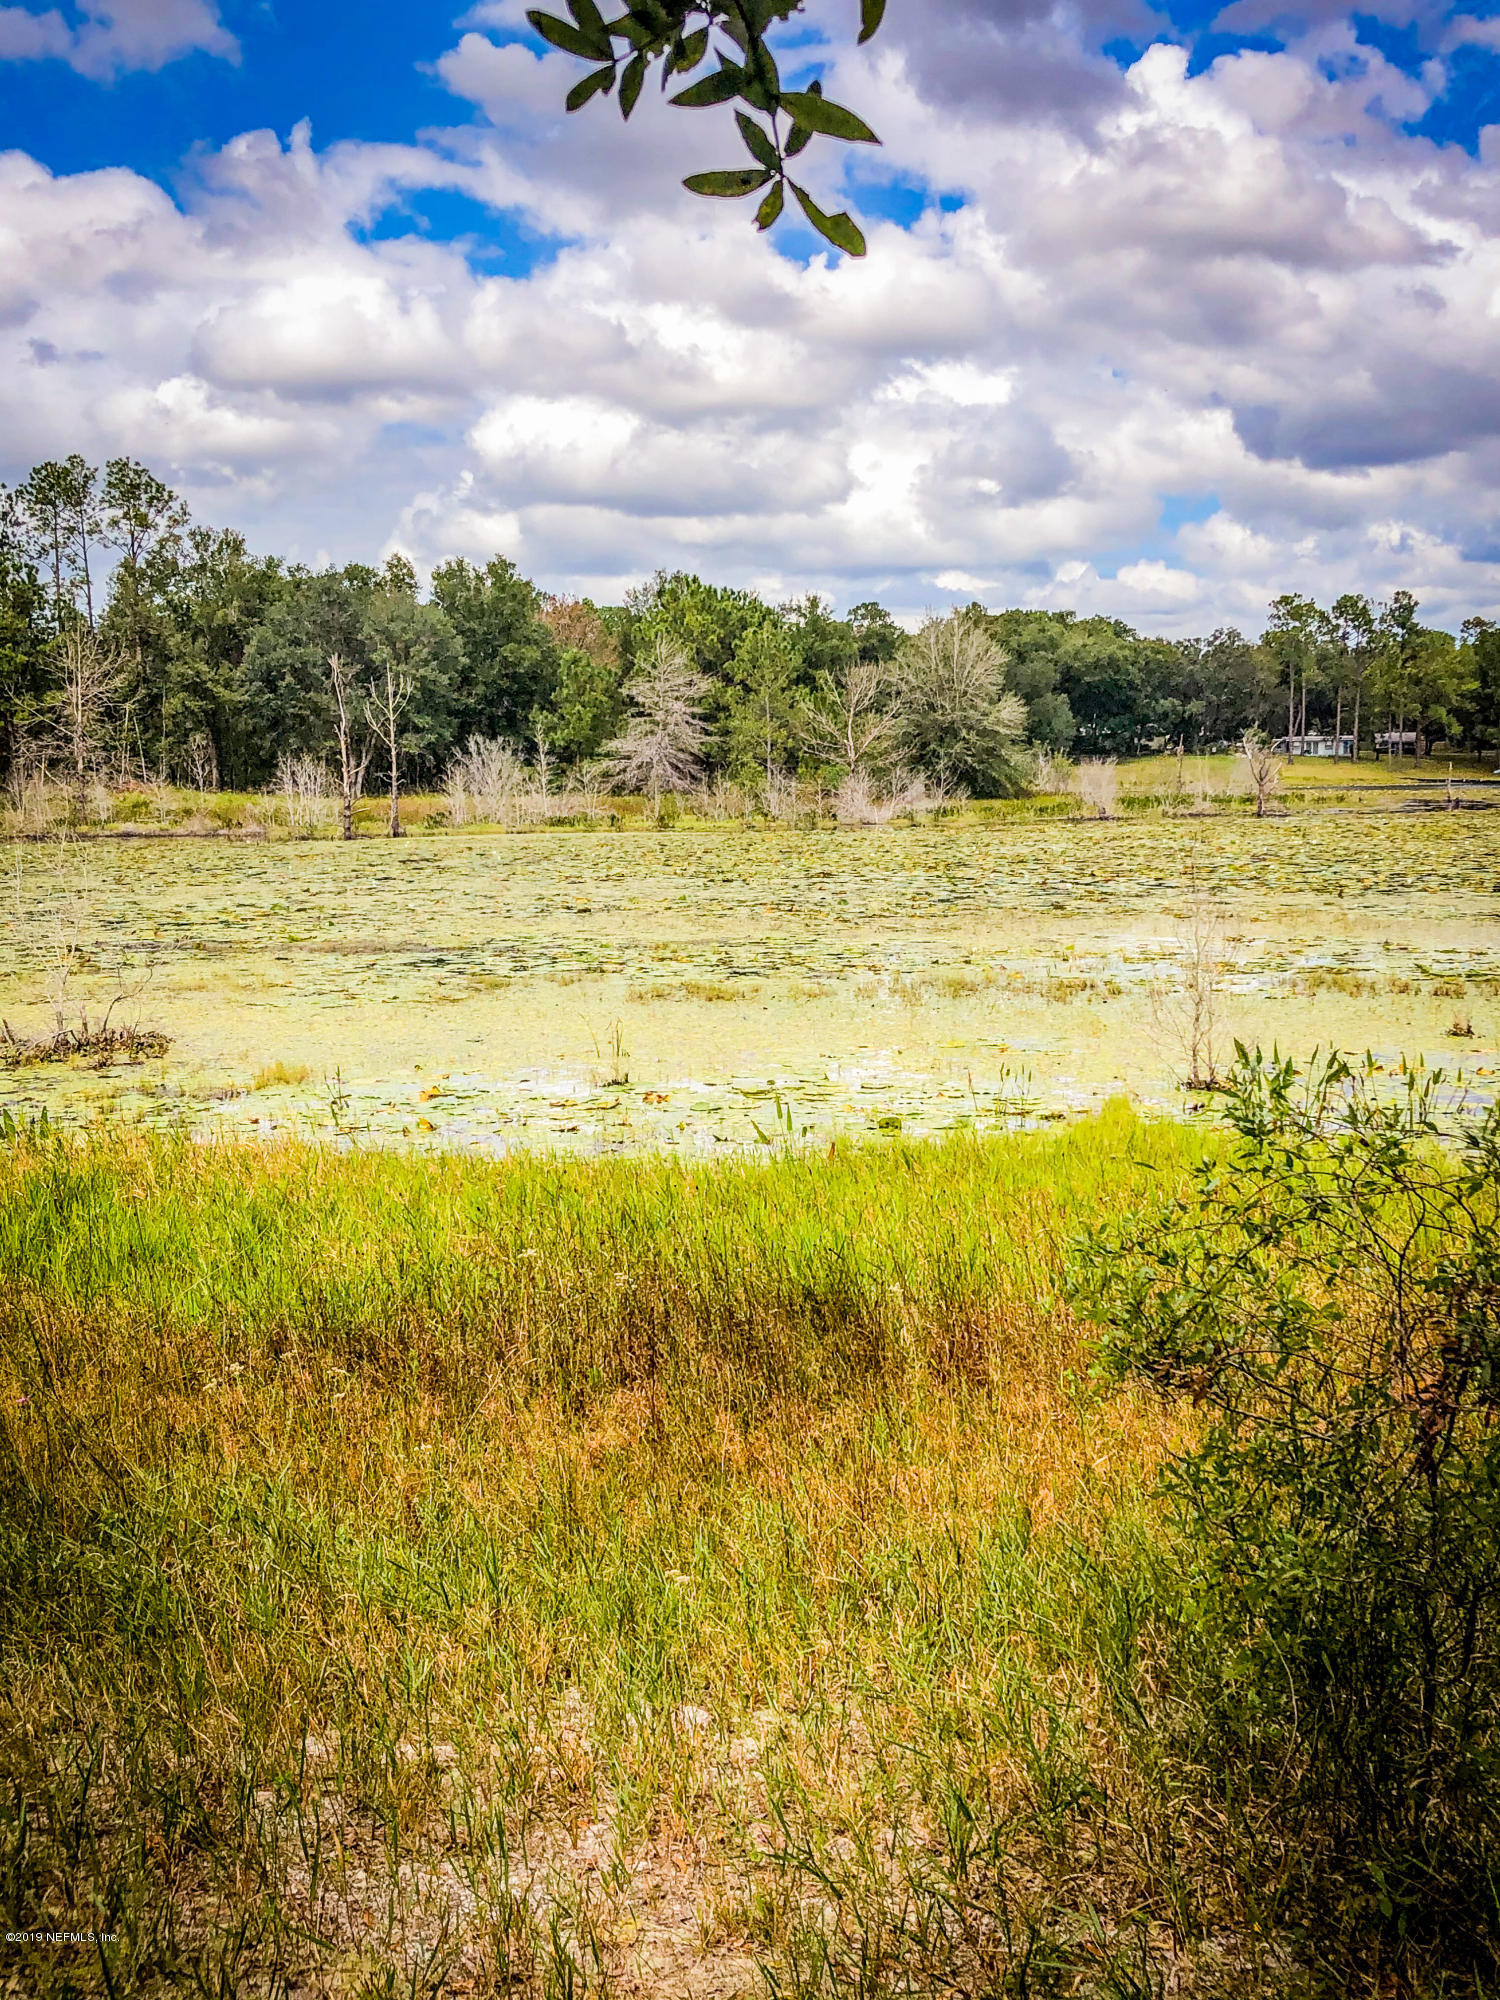 104 TWIN LAKES, HAWTHORNE, FLORIDA 32640, ,Vacant land,For sale,TWIN LAKES,1018982